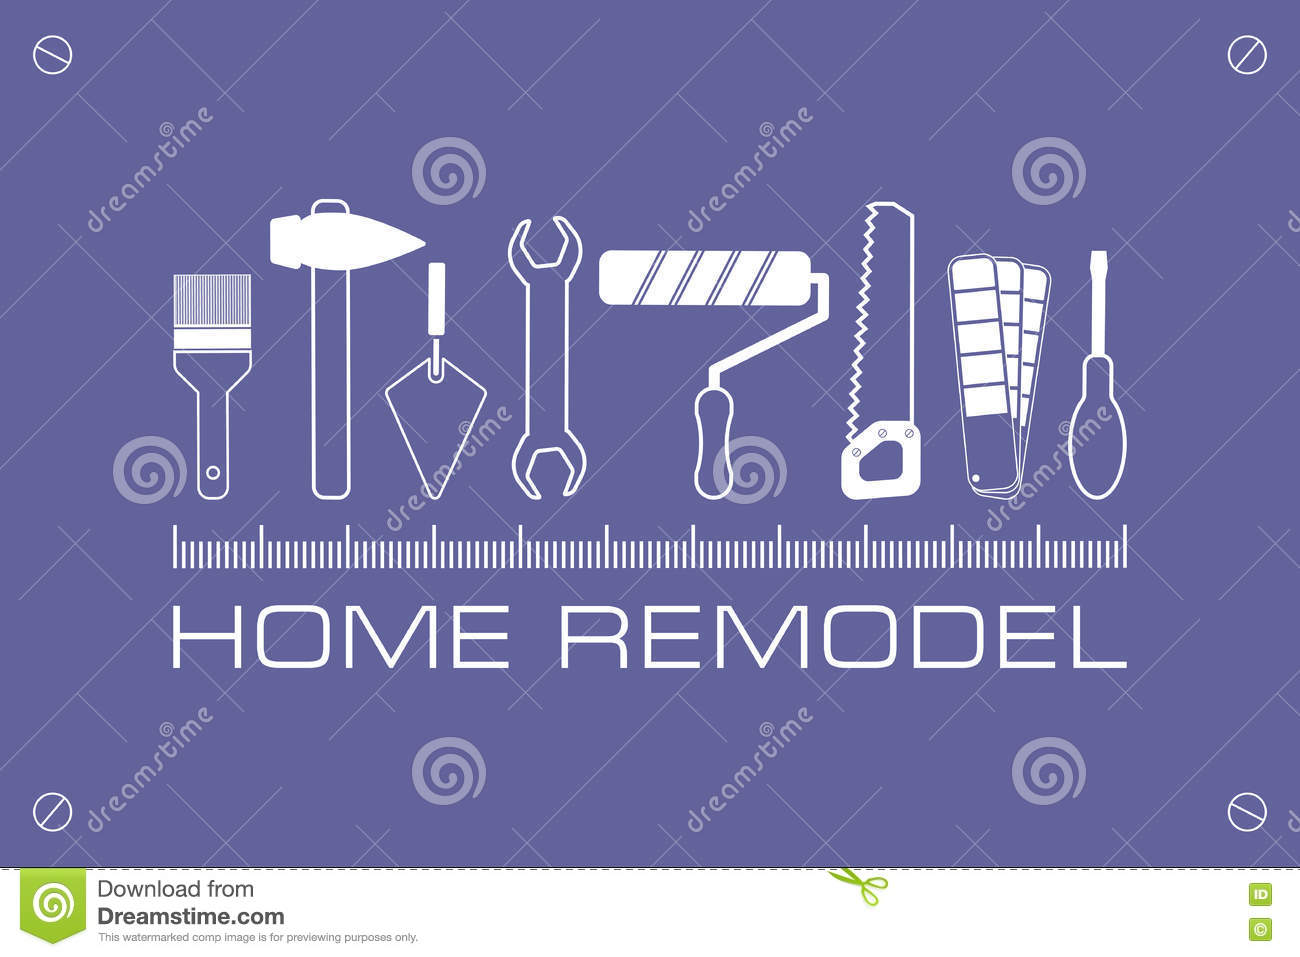 Home remodeling logo remodeling logo clipart - Logo Home Remodel Icon Of Tools For Repair